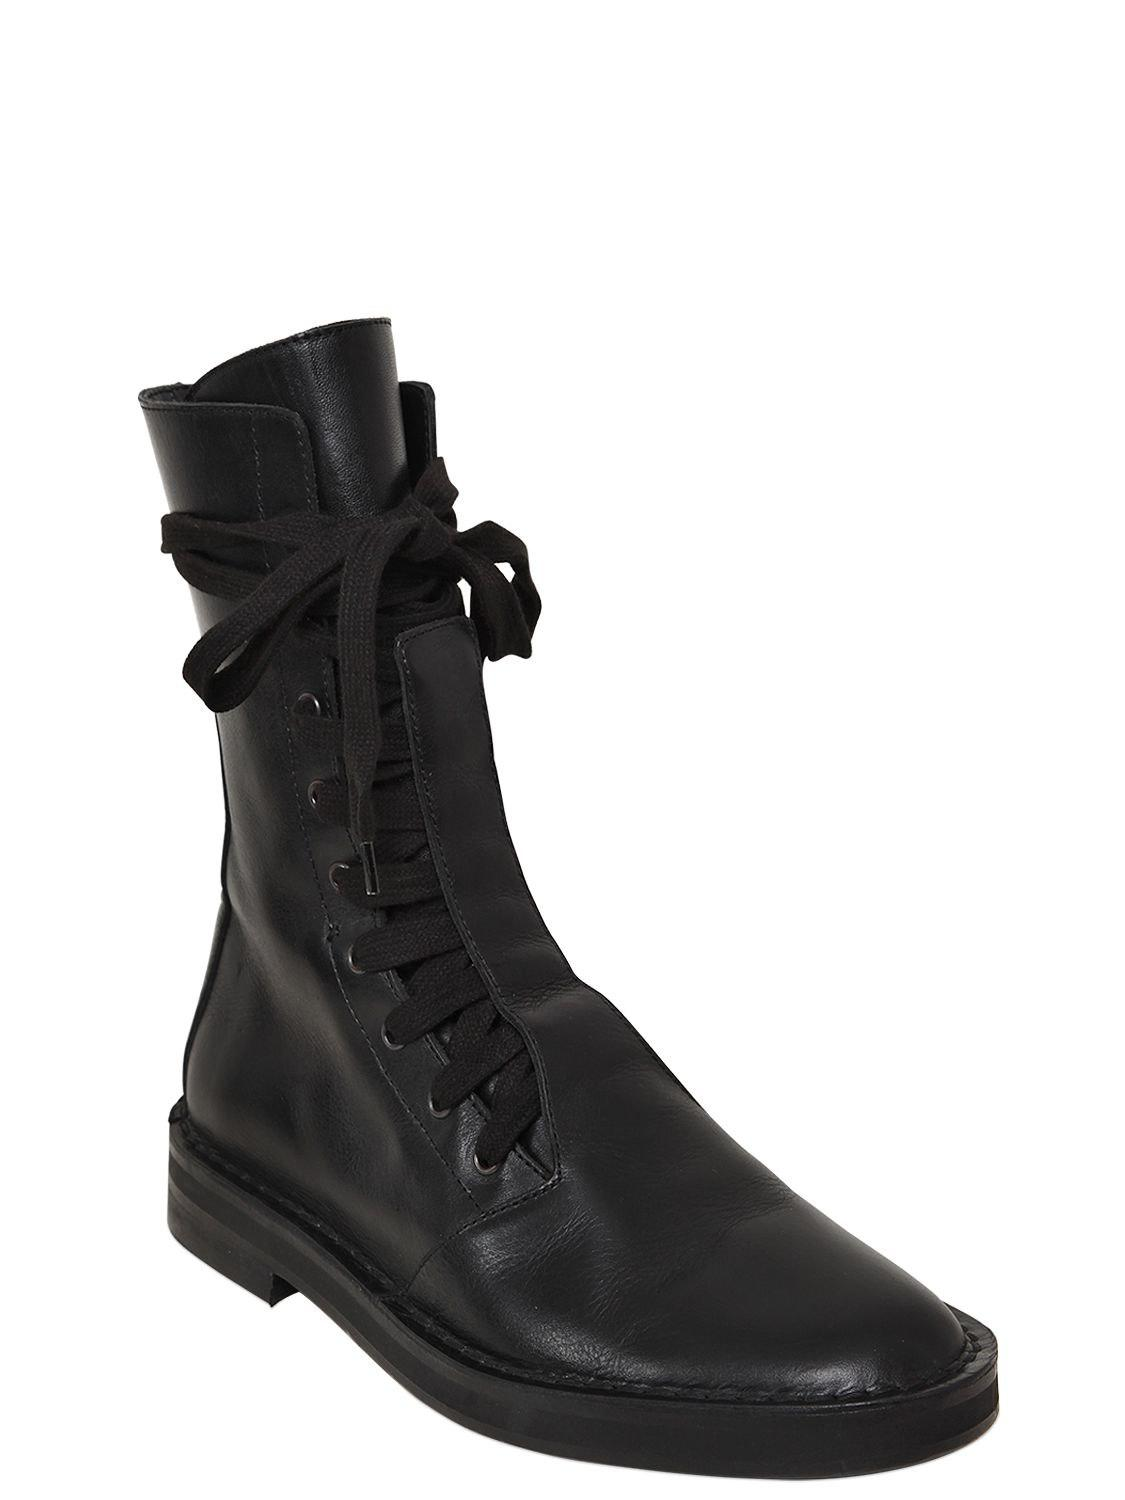 ANN DEMEULEMEESTER 20MM LEATHER COMBAT BOOTS ty32CZDl